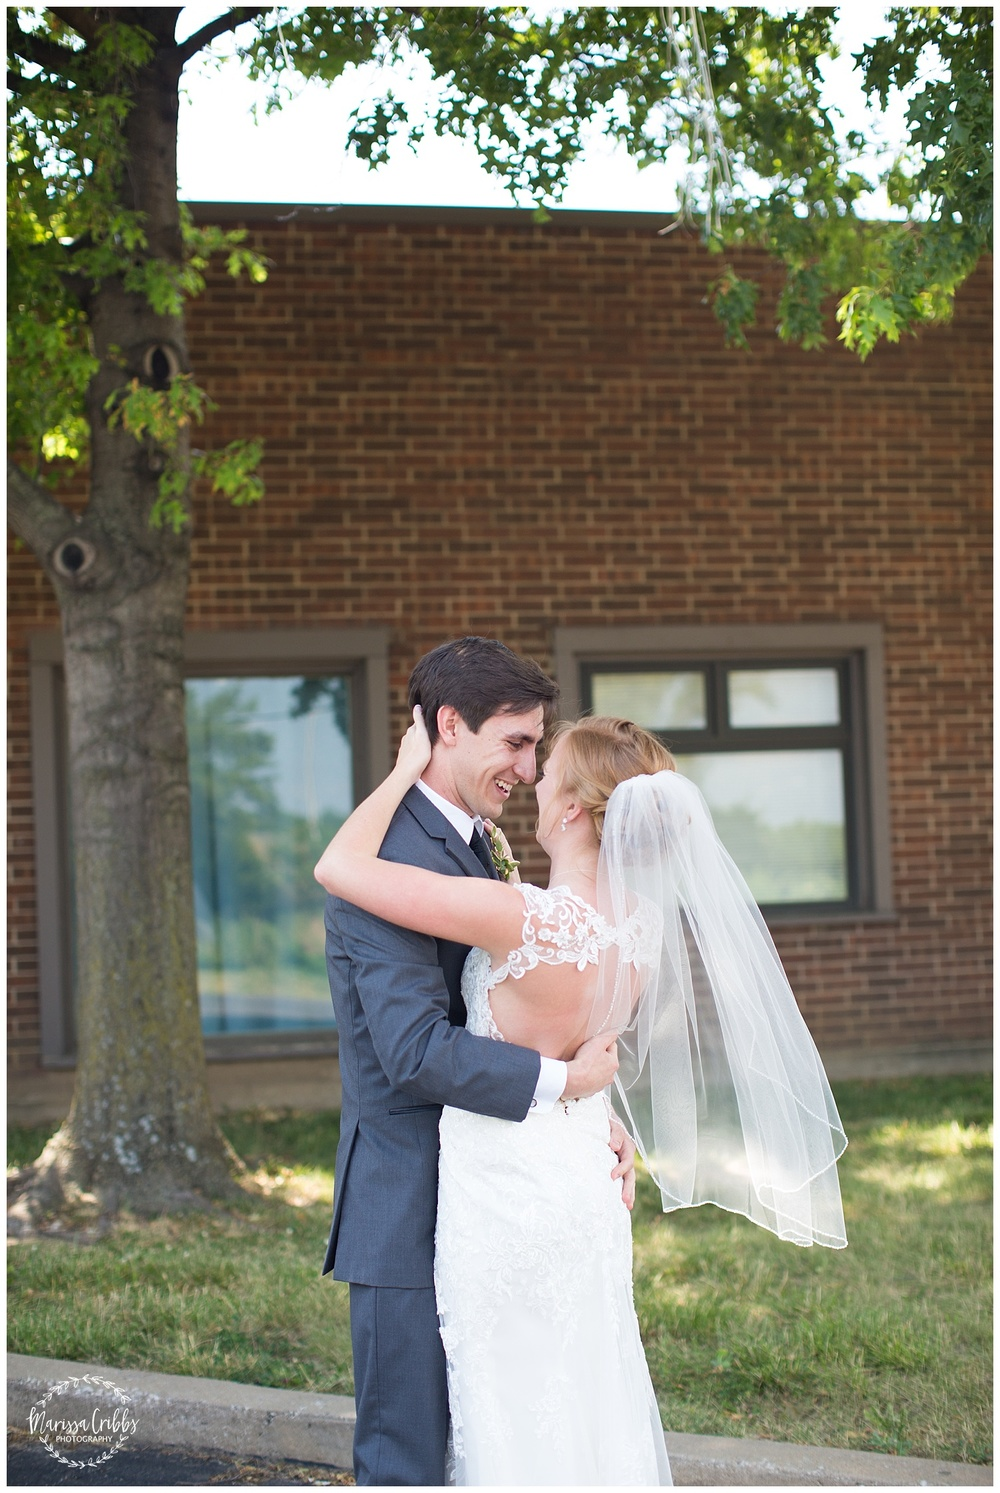 Twin Double Wedding | Union Horse Distilling Co. | Marissa Cribbs Photography | KC Weddings_0063.jpg